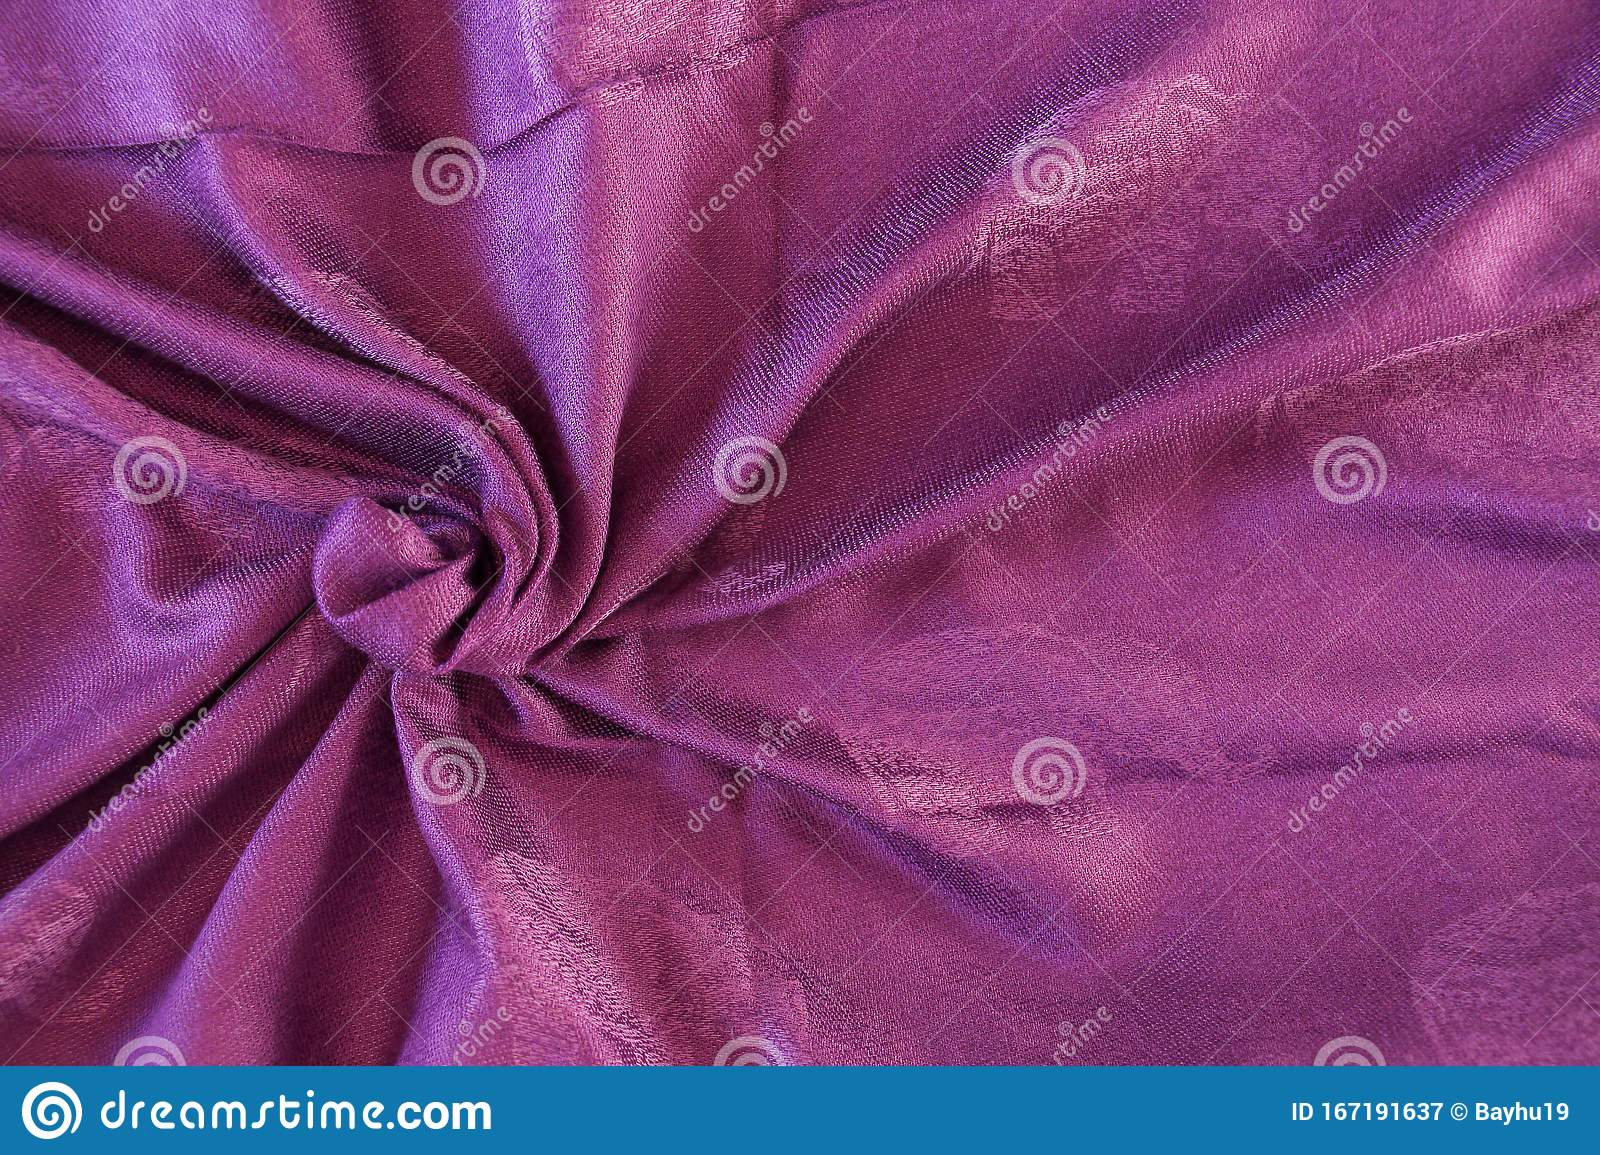 142 Nepalese Fabric Photos Free Royalty Free Stock Photos From Dreamstime